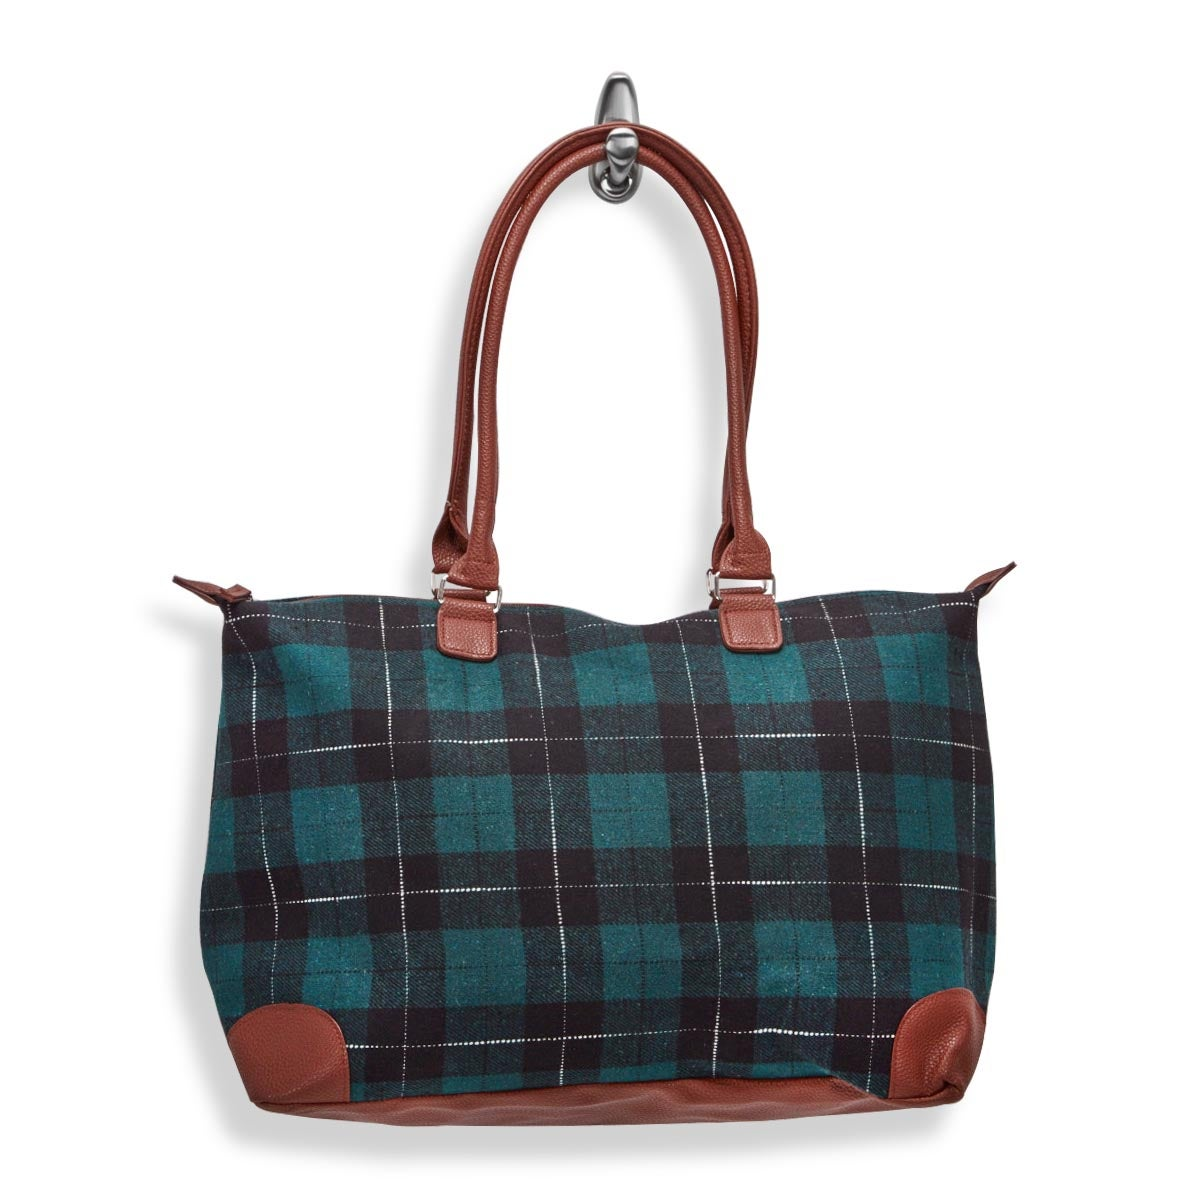 Lds green large flannel tote bag